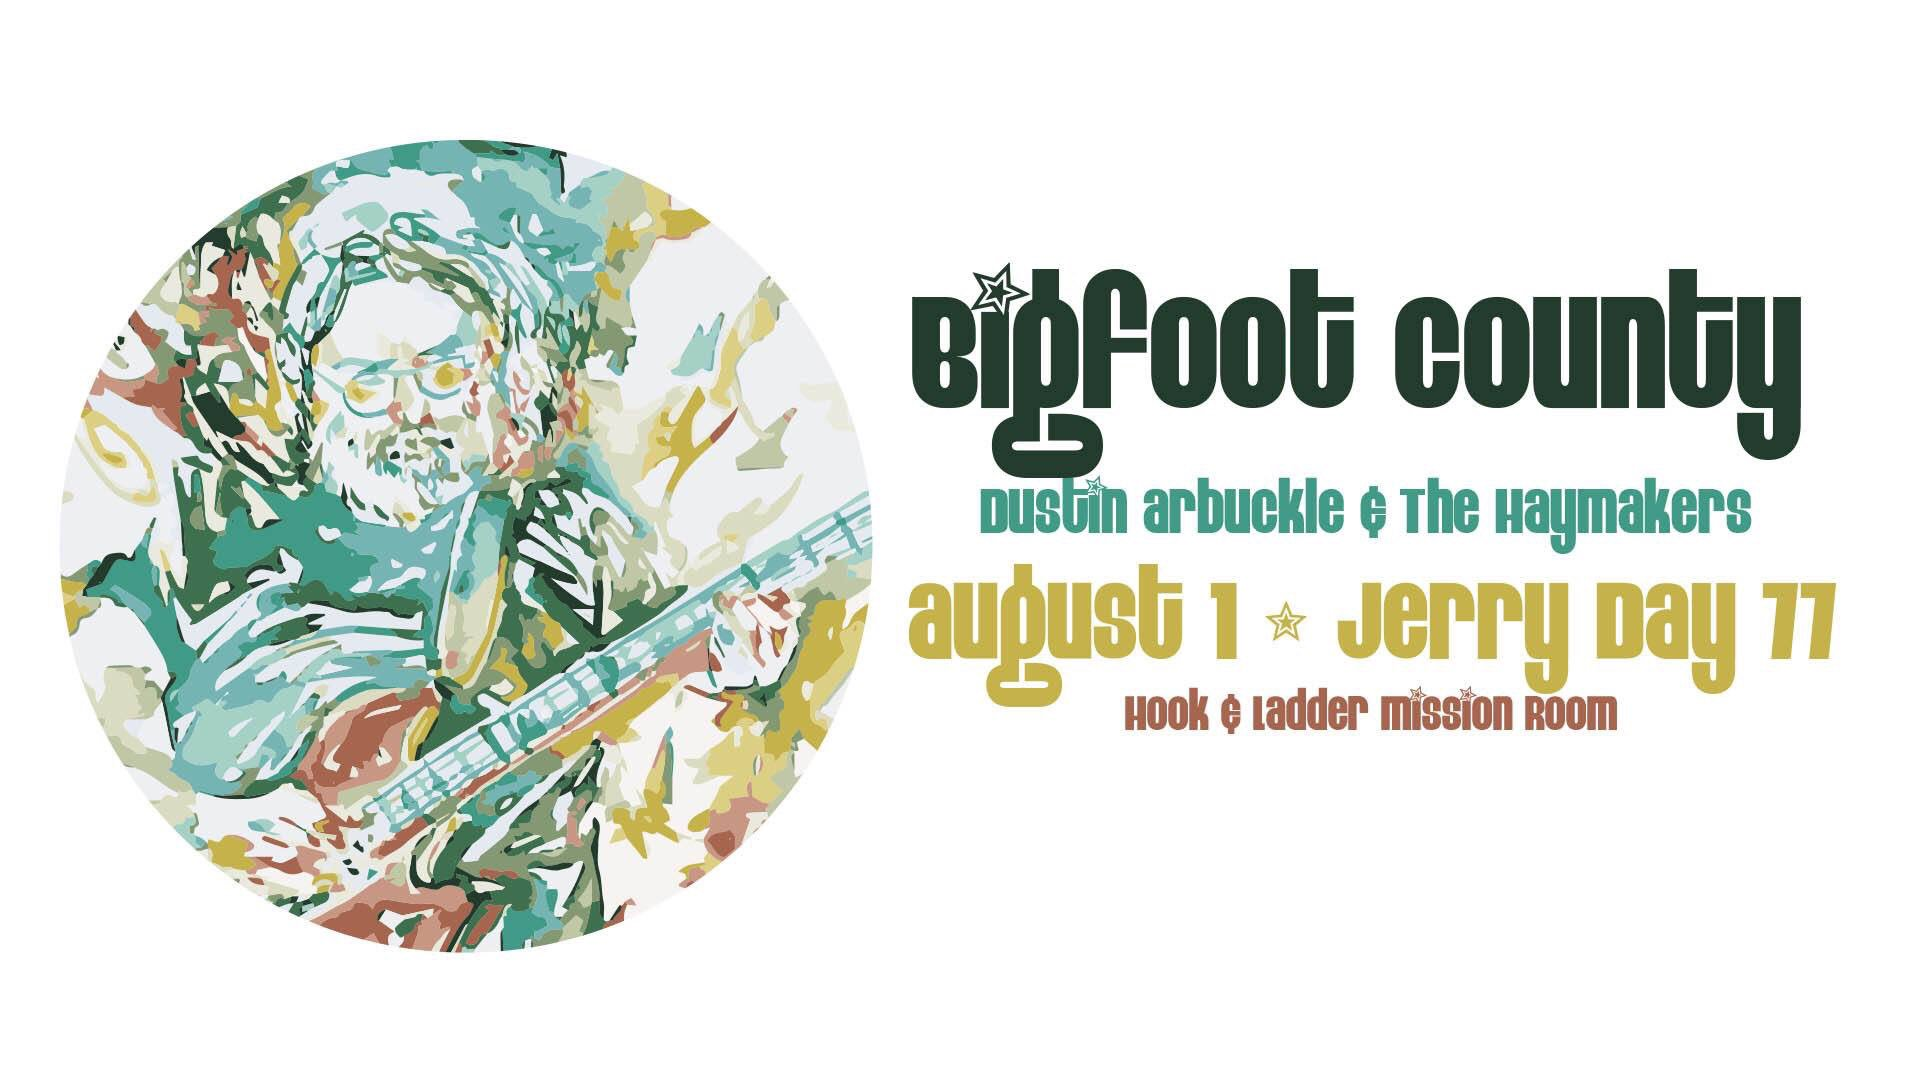 Tomorrow night I ll be playing with Bigfoot County at 9pm.   Happy Birthday Jerry Garcia!